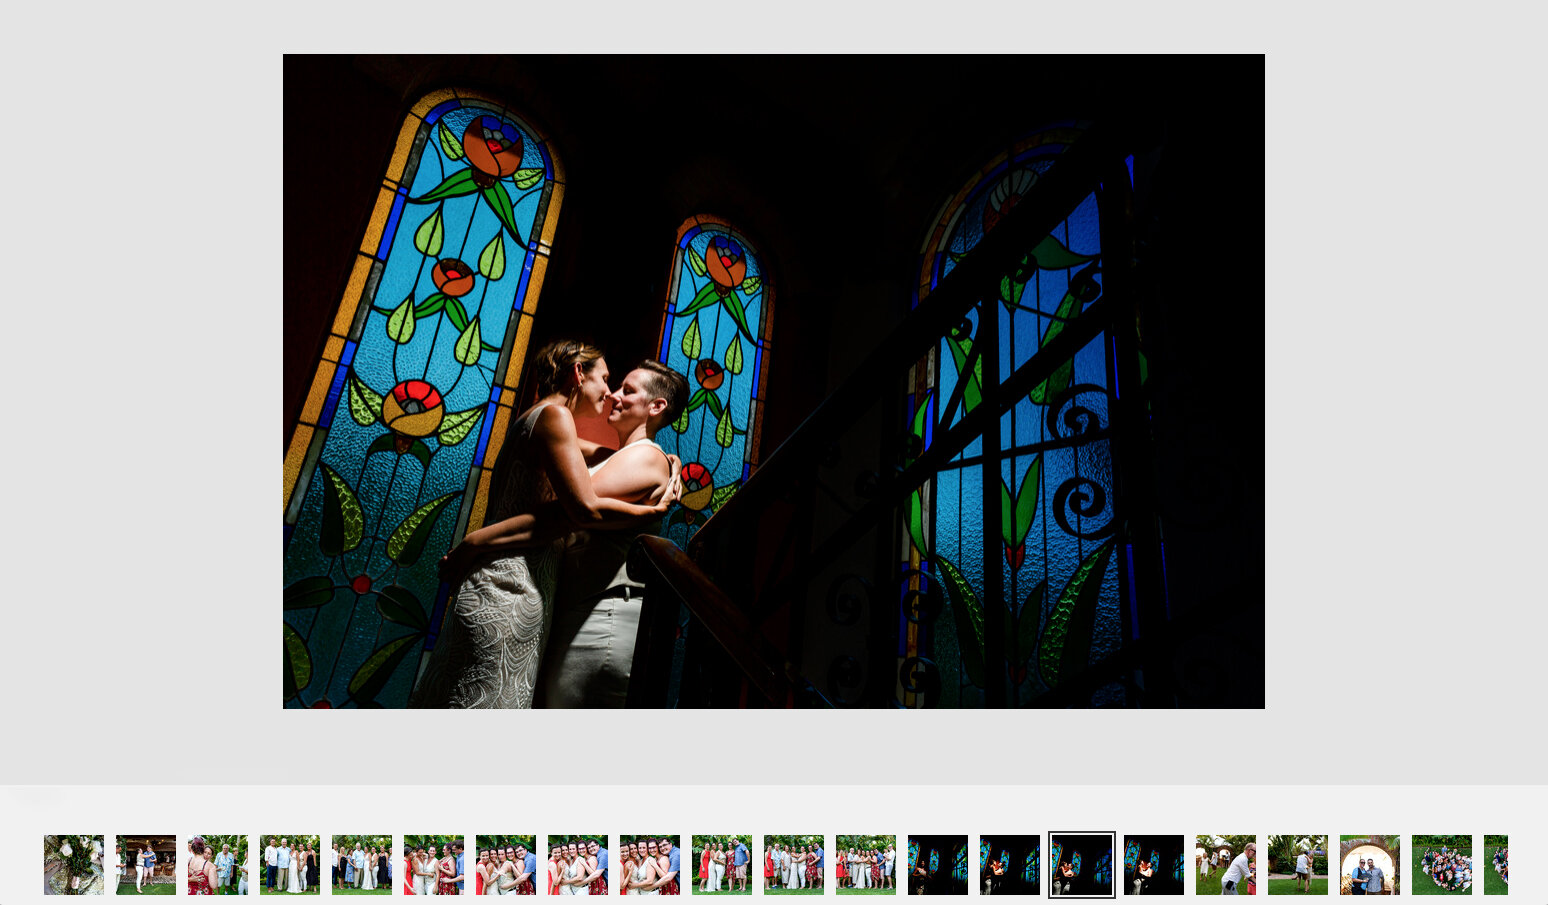 Lesbian couple on their wedding day posing in the staircase next to stained glass.